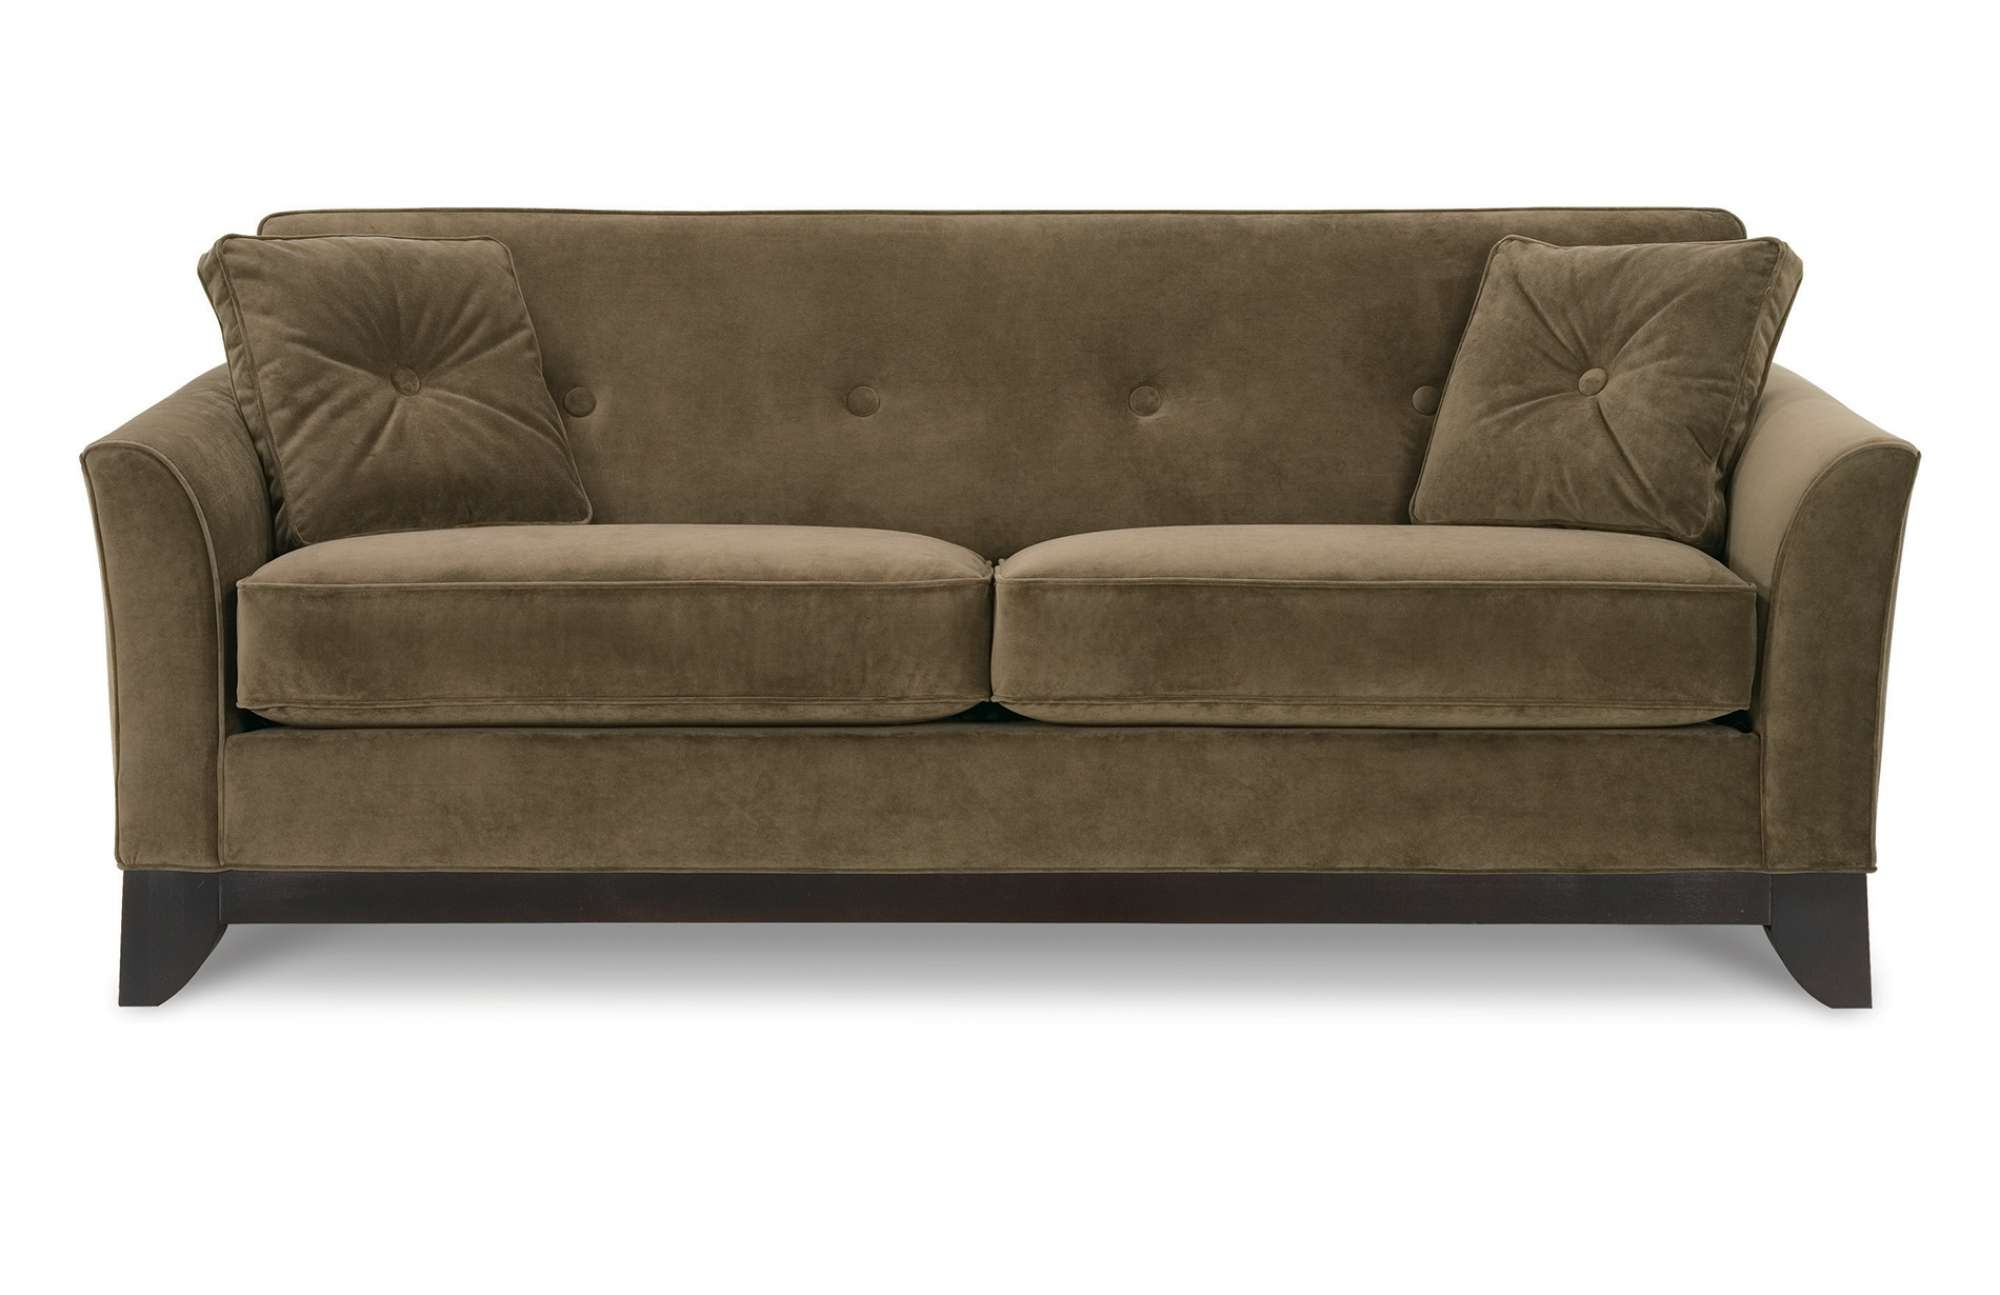 Sofas Center Fancy Furniture Sofa In Room Ideas With Singular With Regard To Fancy Sofas (Image 9 of 15)